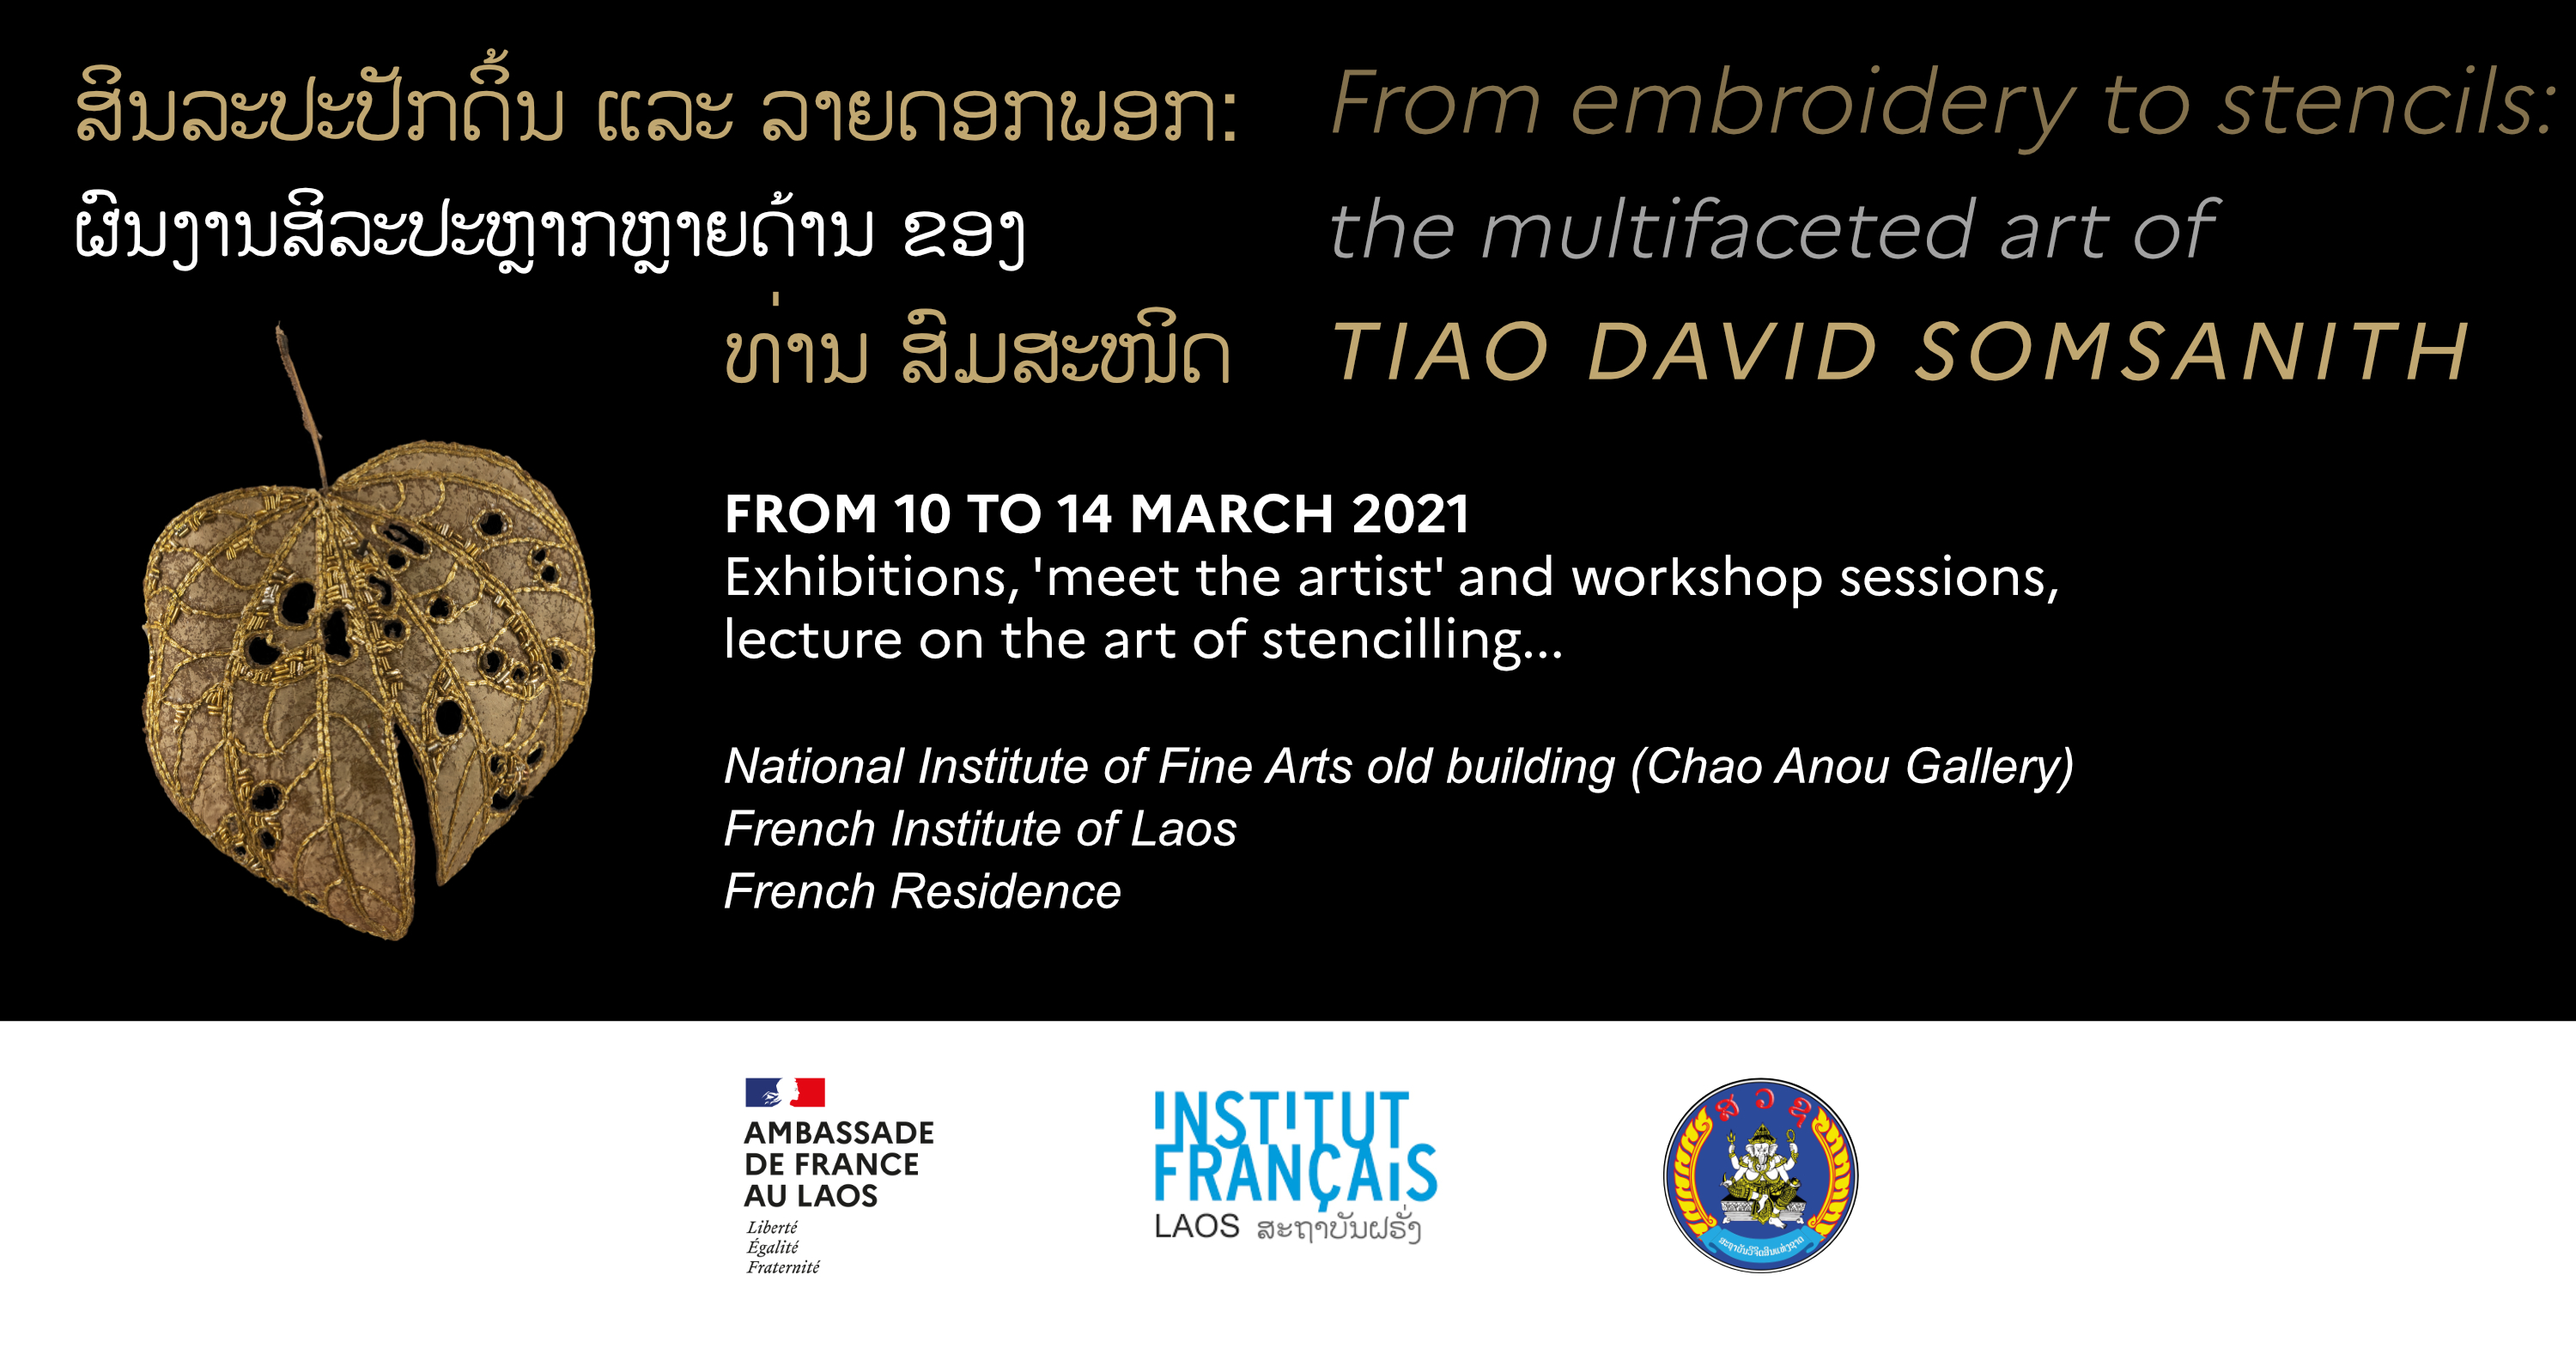 Exhibitions «From embroidery to stencils: The multifaceted art of Tiao David Somsanith»